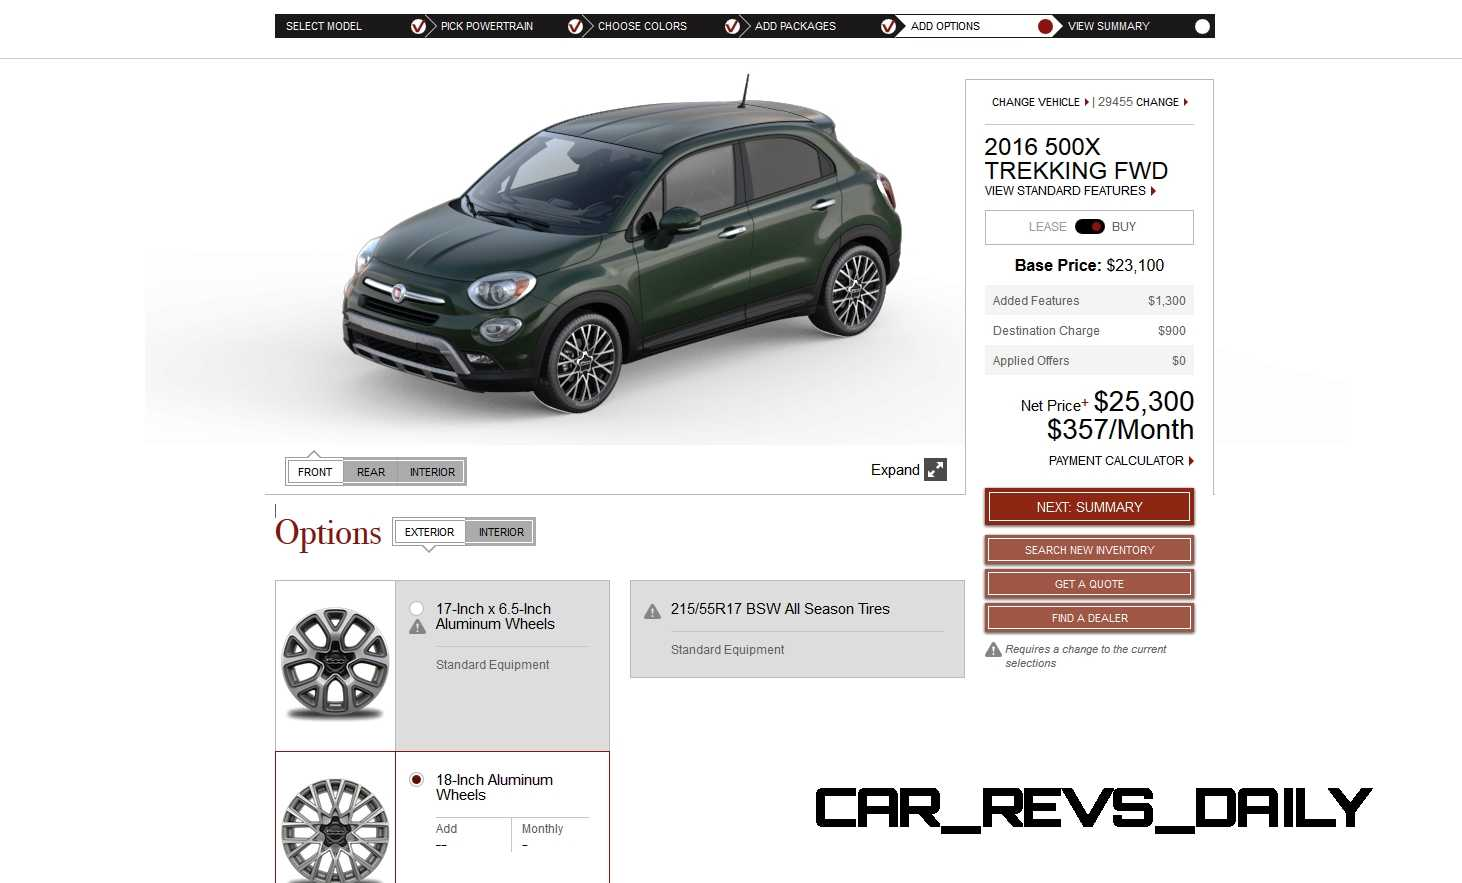 2016 Fiat 500X Pricing, Colors and Real-Life Photos 20